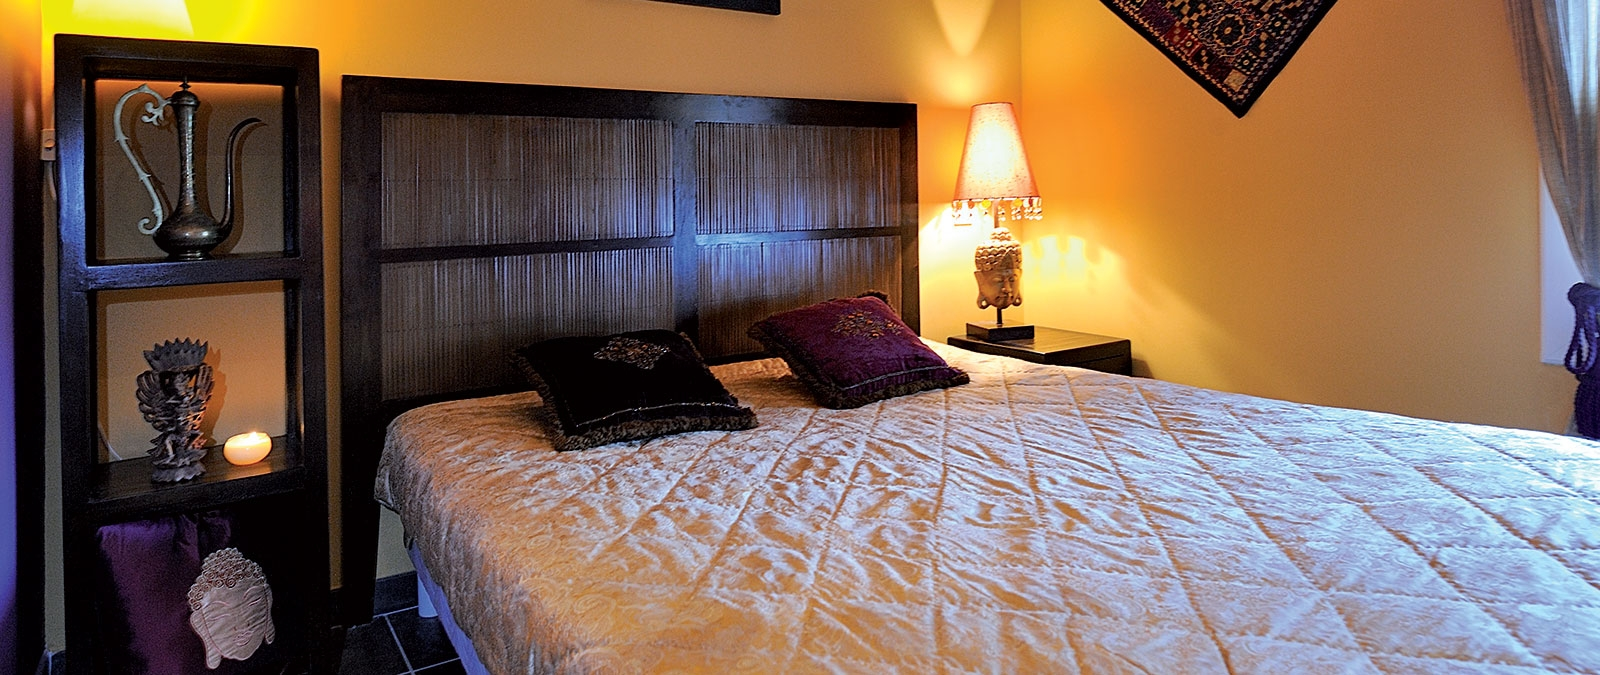 Bedroom with double bed Jaïpur naturist studio flat rental